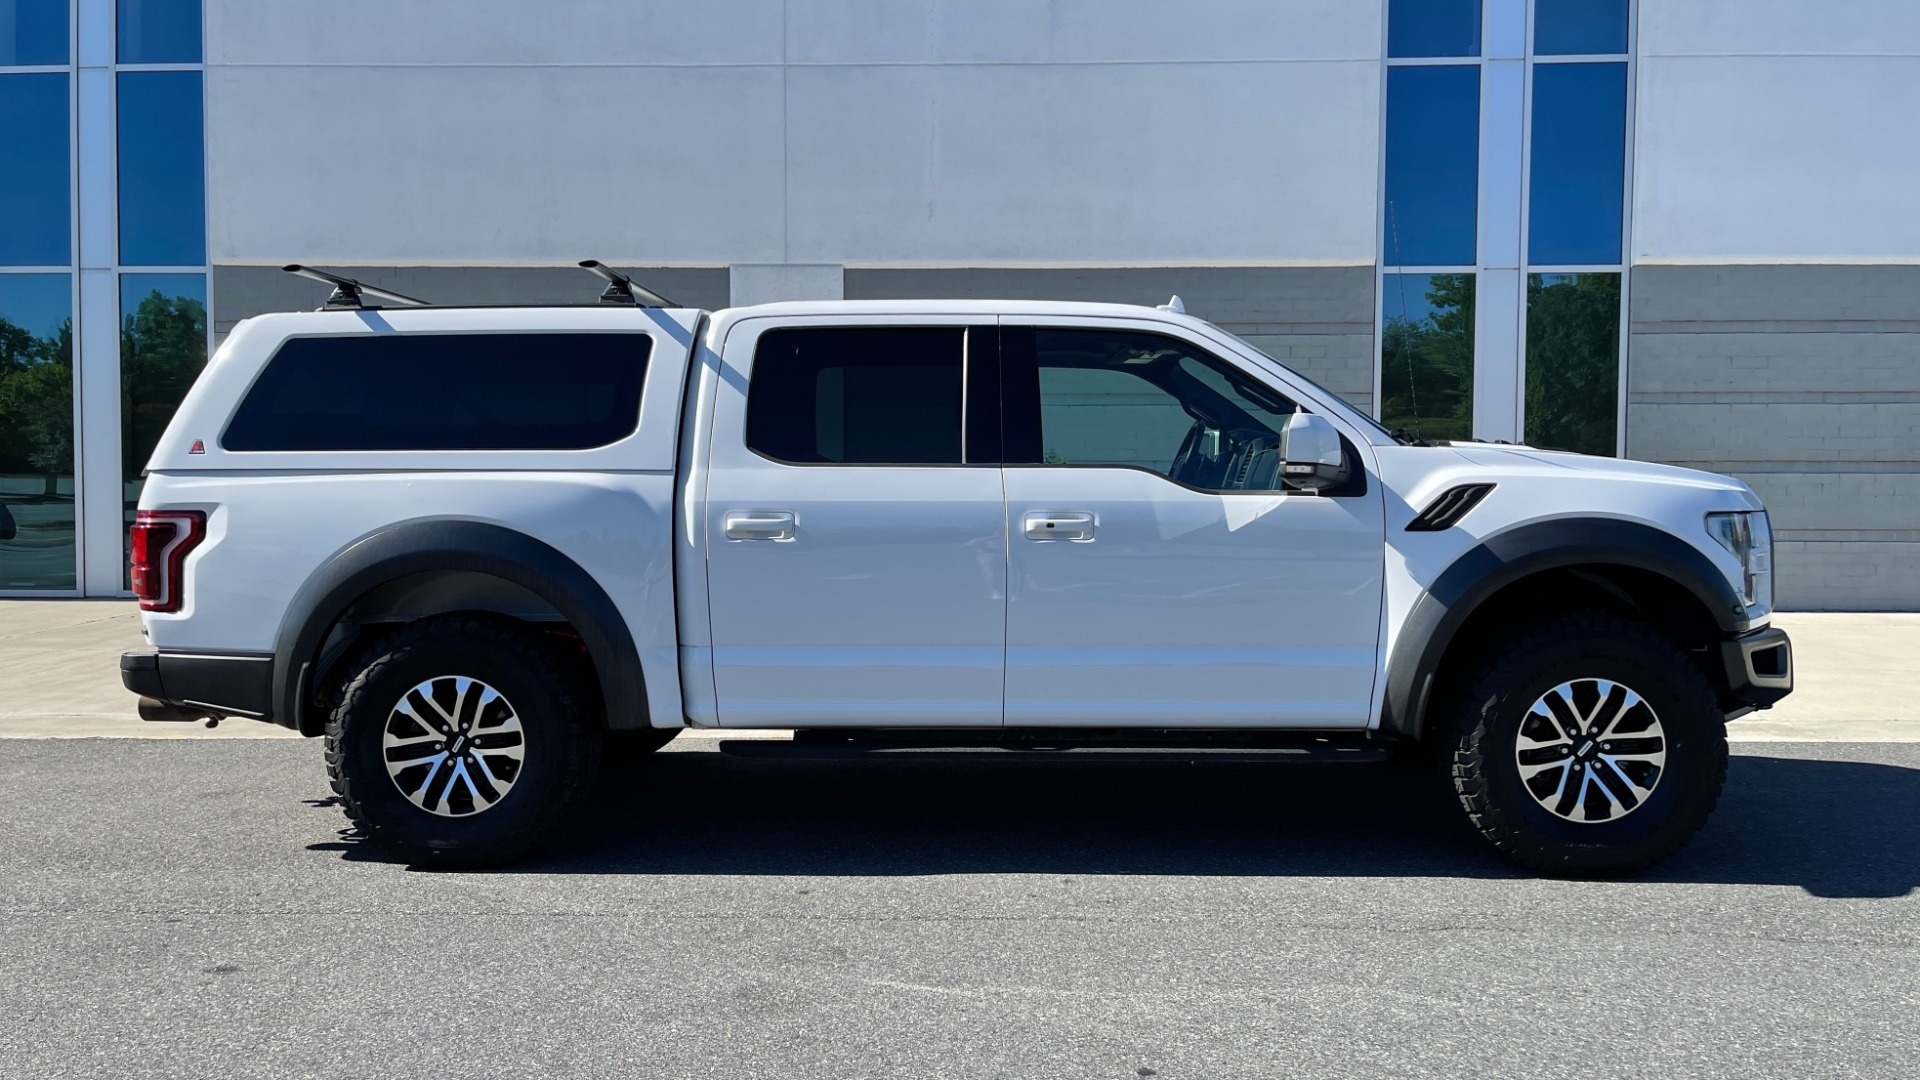 Used 2019 Ford F-150 RAPTOR 4X4 SUPERCREW / NAV / BLIS / B&O SND / REMOTE START / REARVIEW for sale $65,999 at Formula Imports in Charlotte NC 28227 7